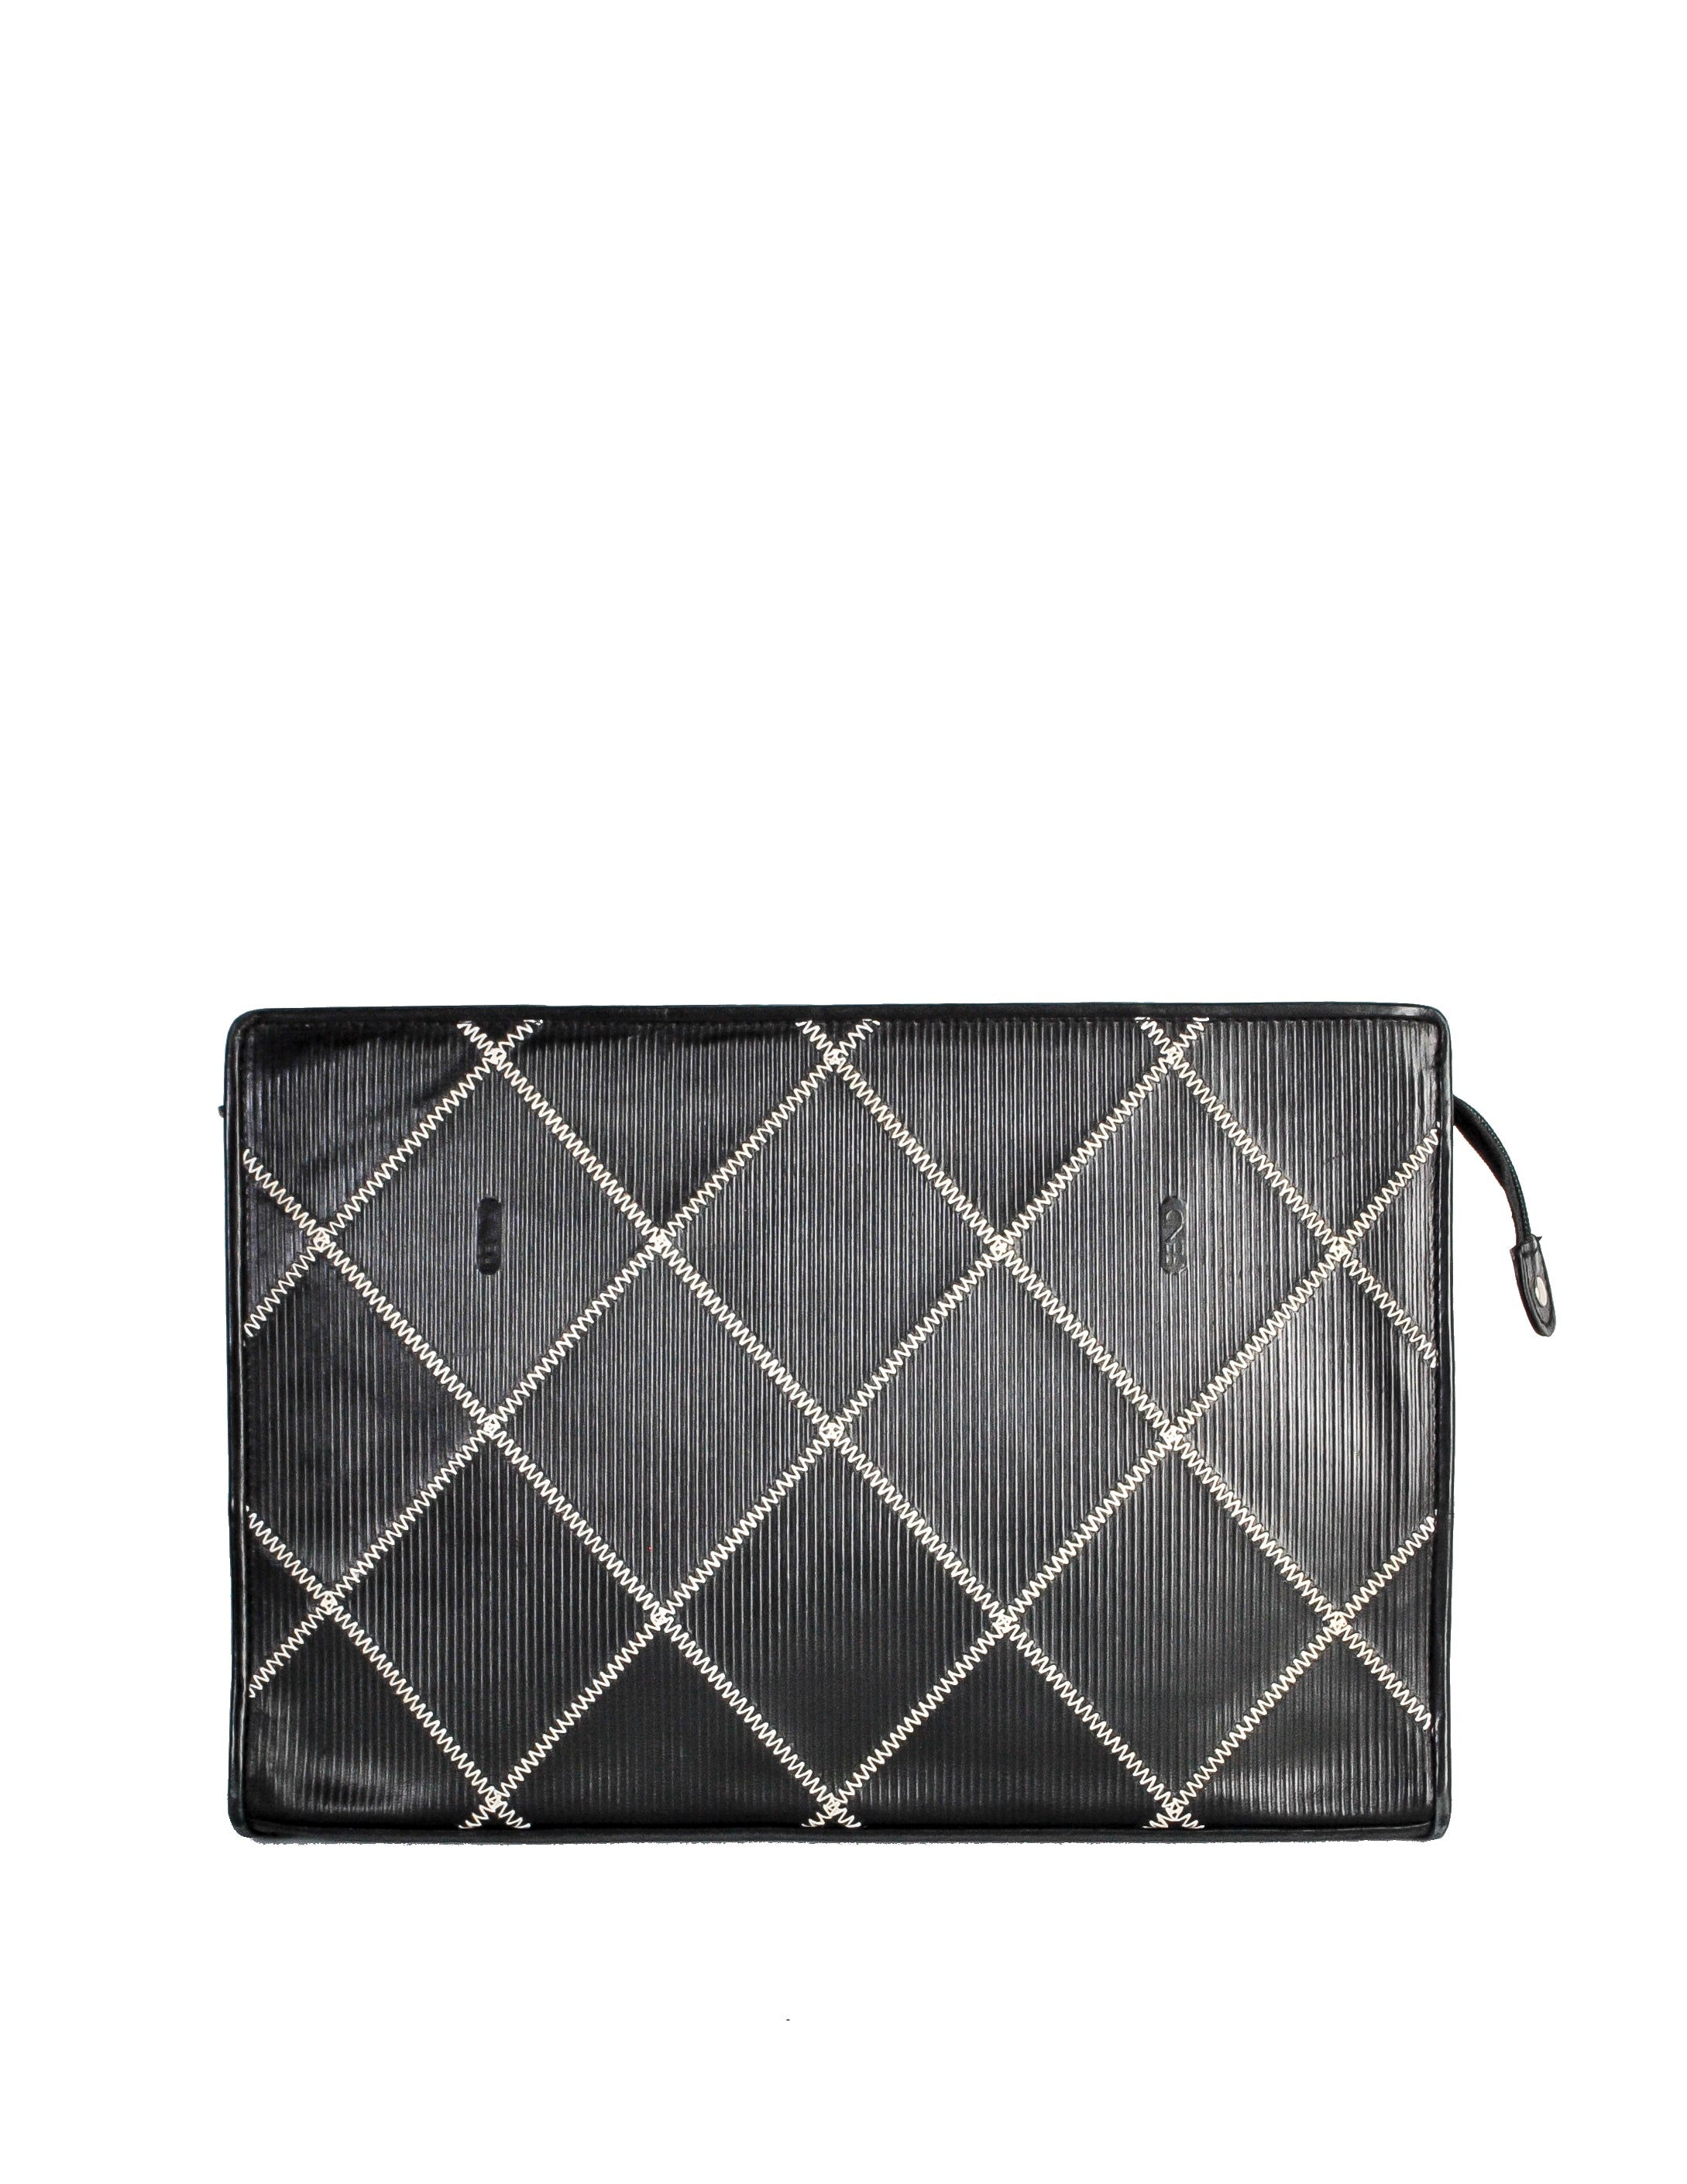 Fendi Vintage Black Ribbed Leather Contract Stitch Portfolio Clutch Bag